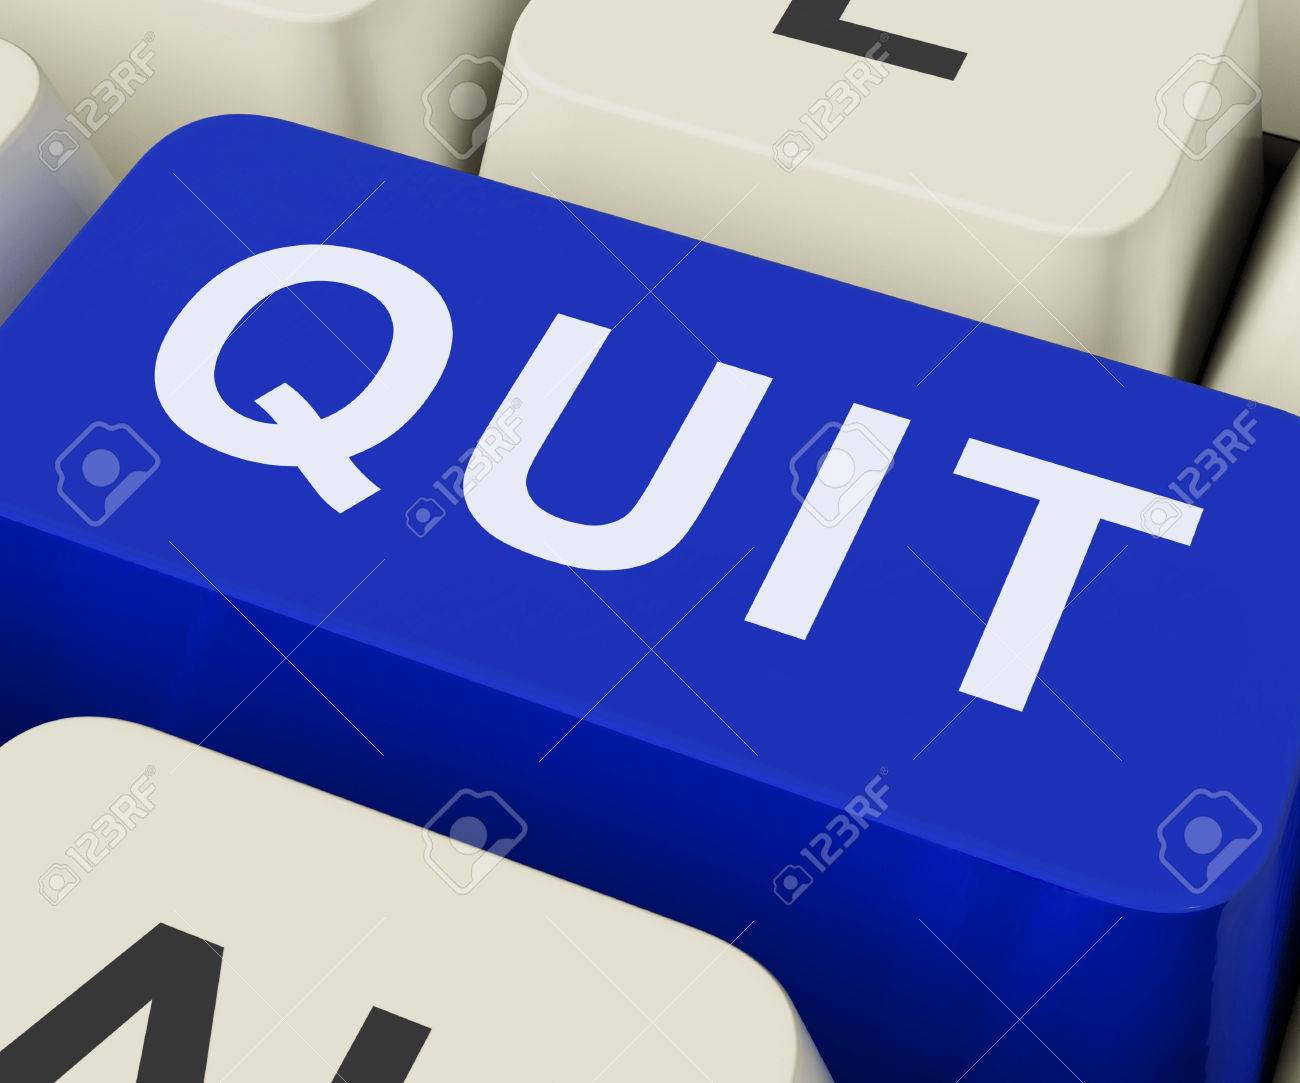 resign images stock pictures royalty resign photos and resign quit key showing exit resign or give up